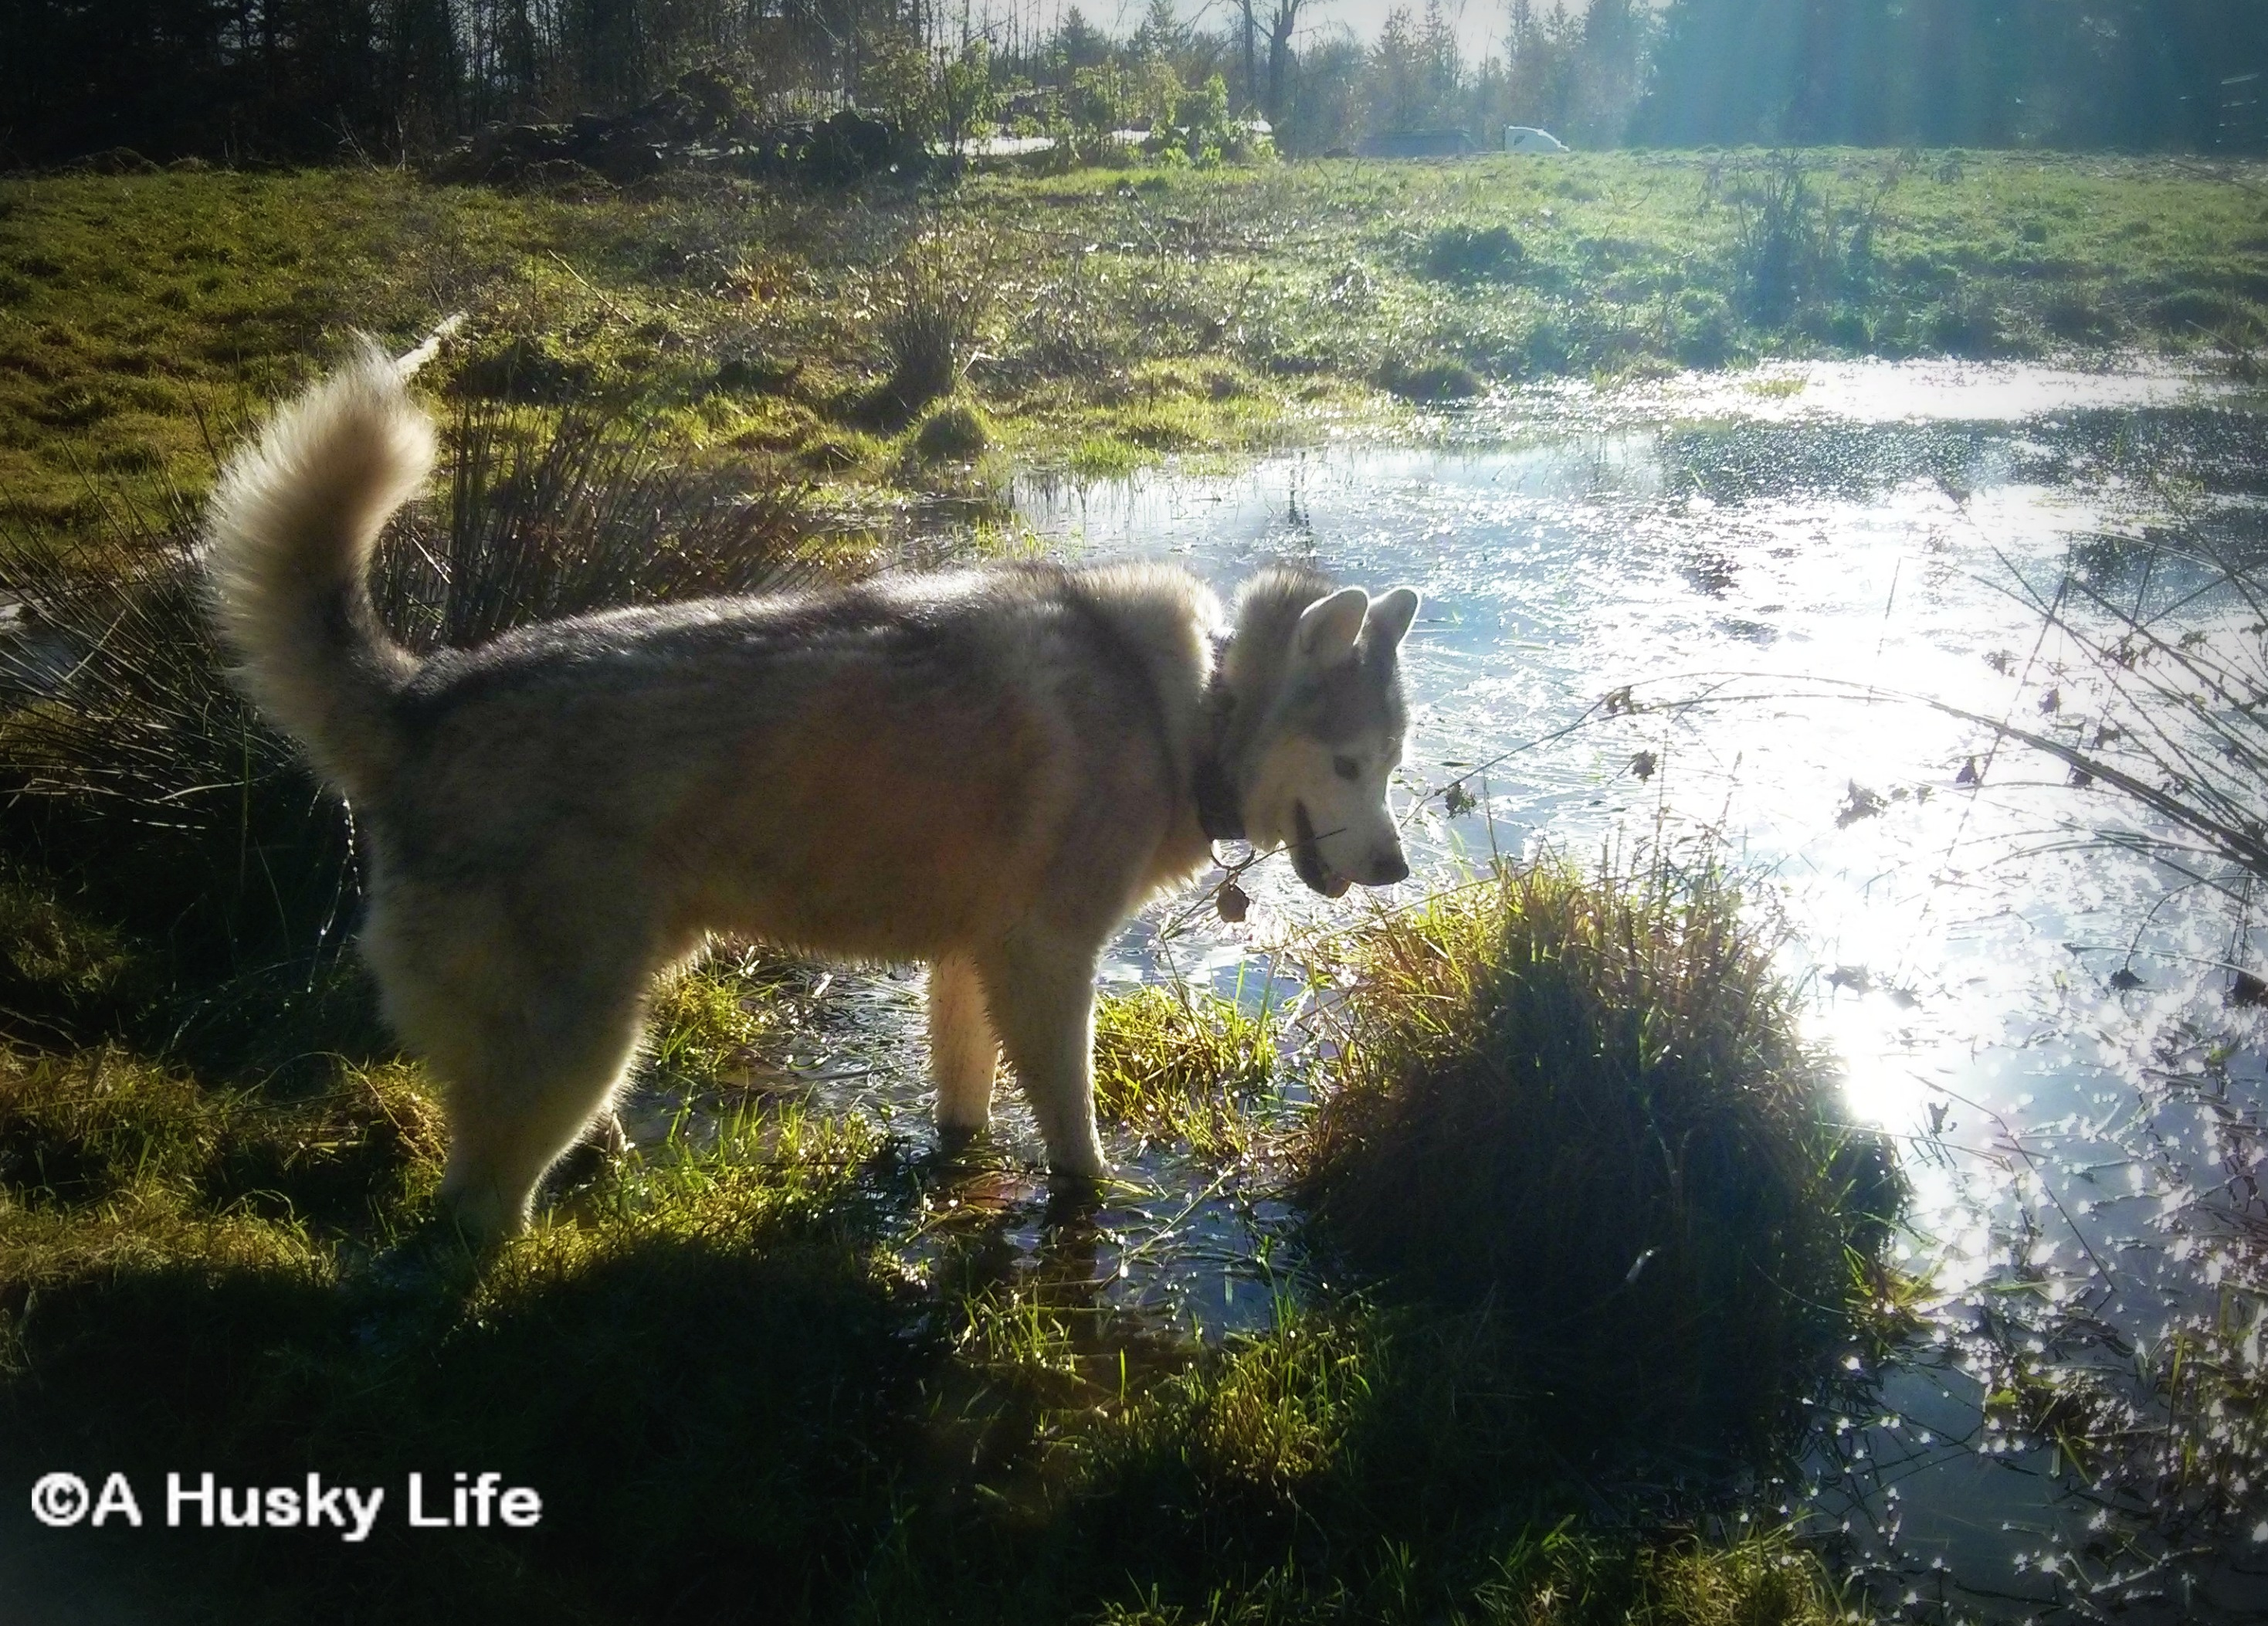 Siberian Husky in a pond looking for frogs.